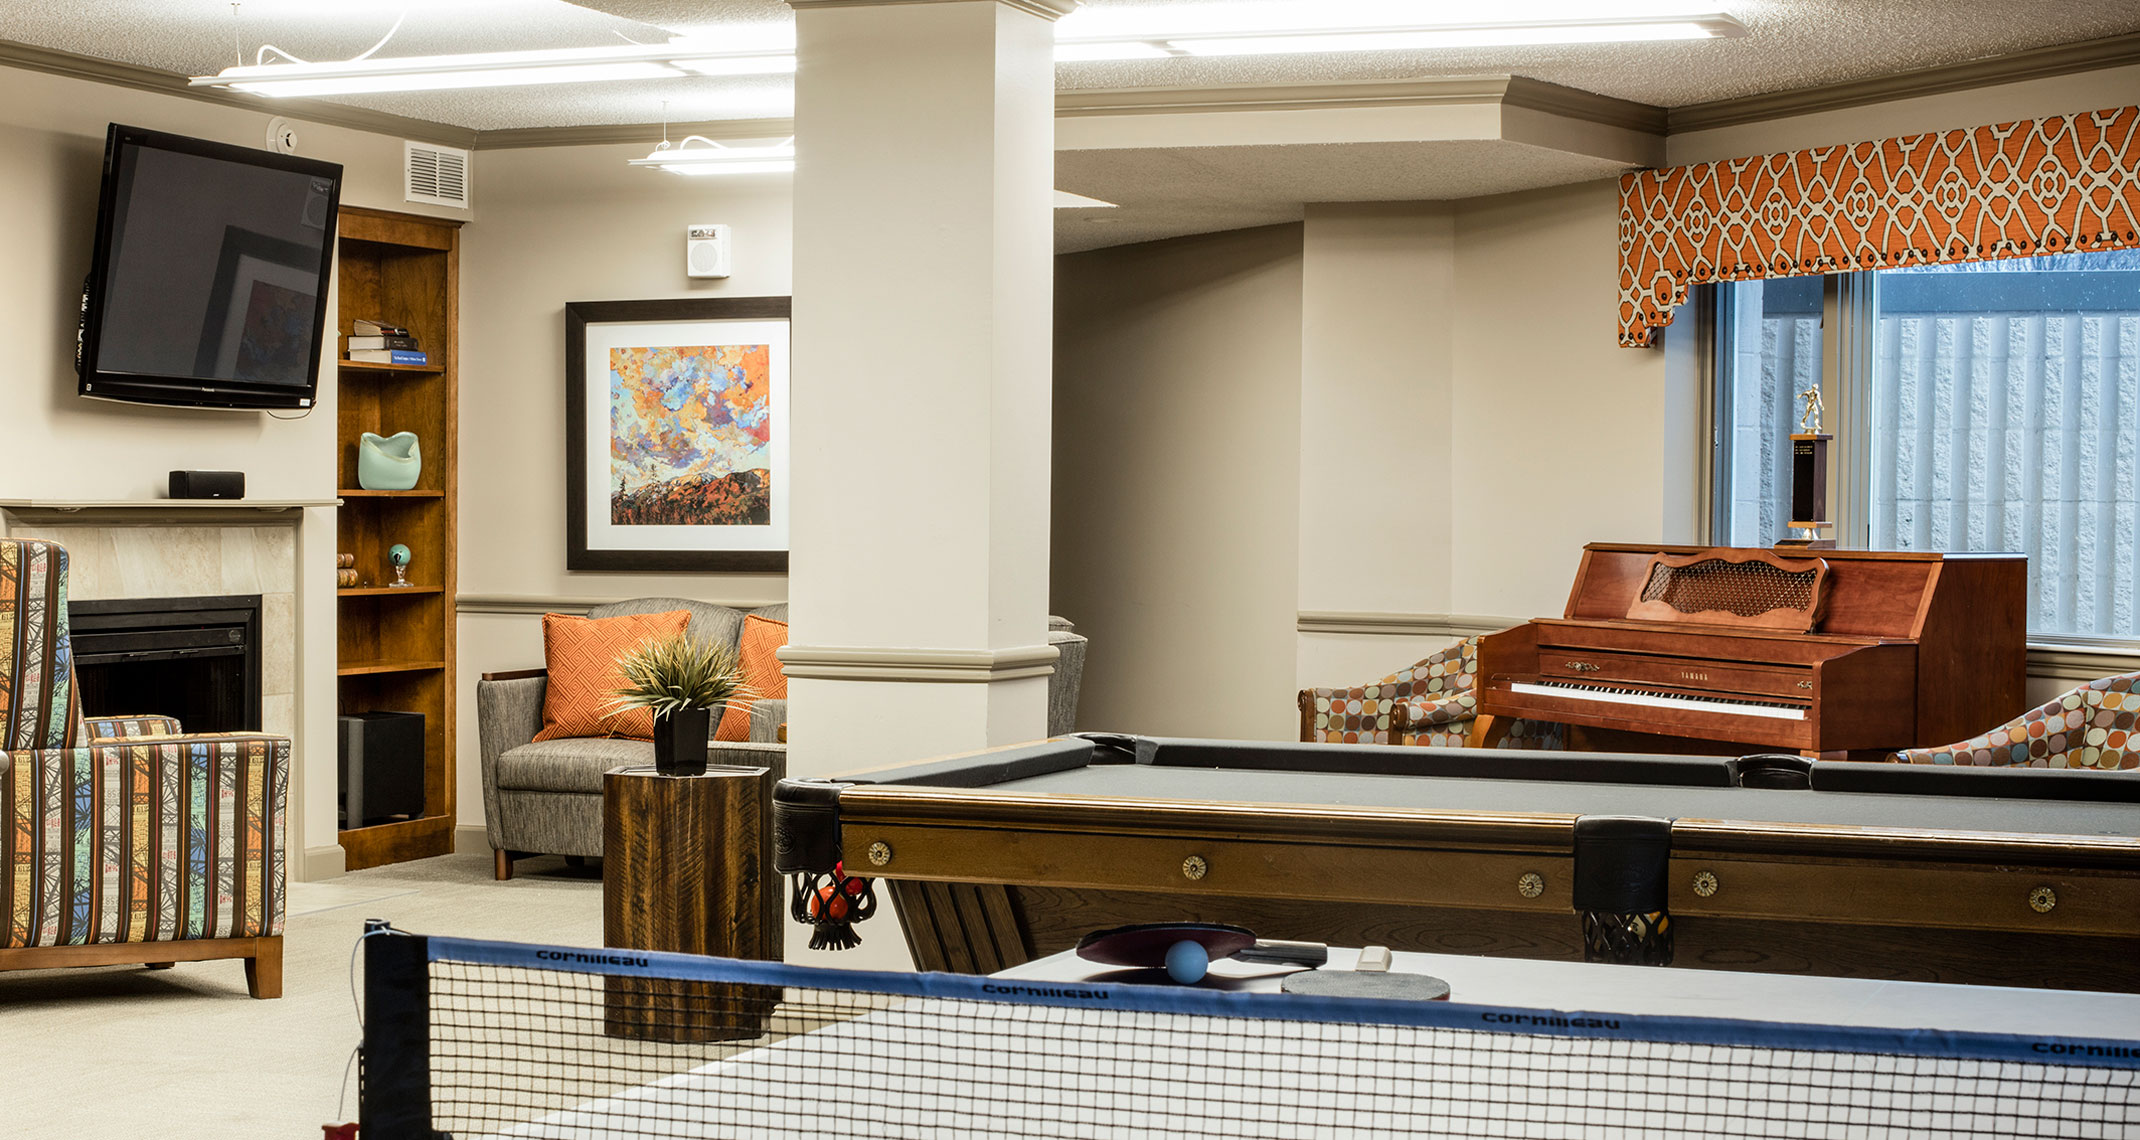 Immanuel Village Recreation Room